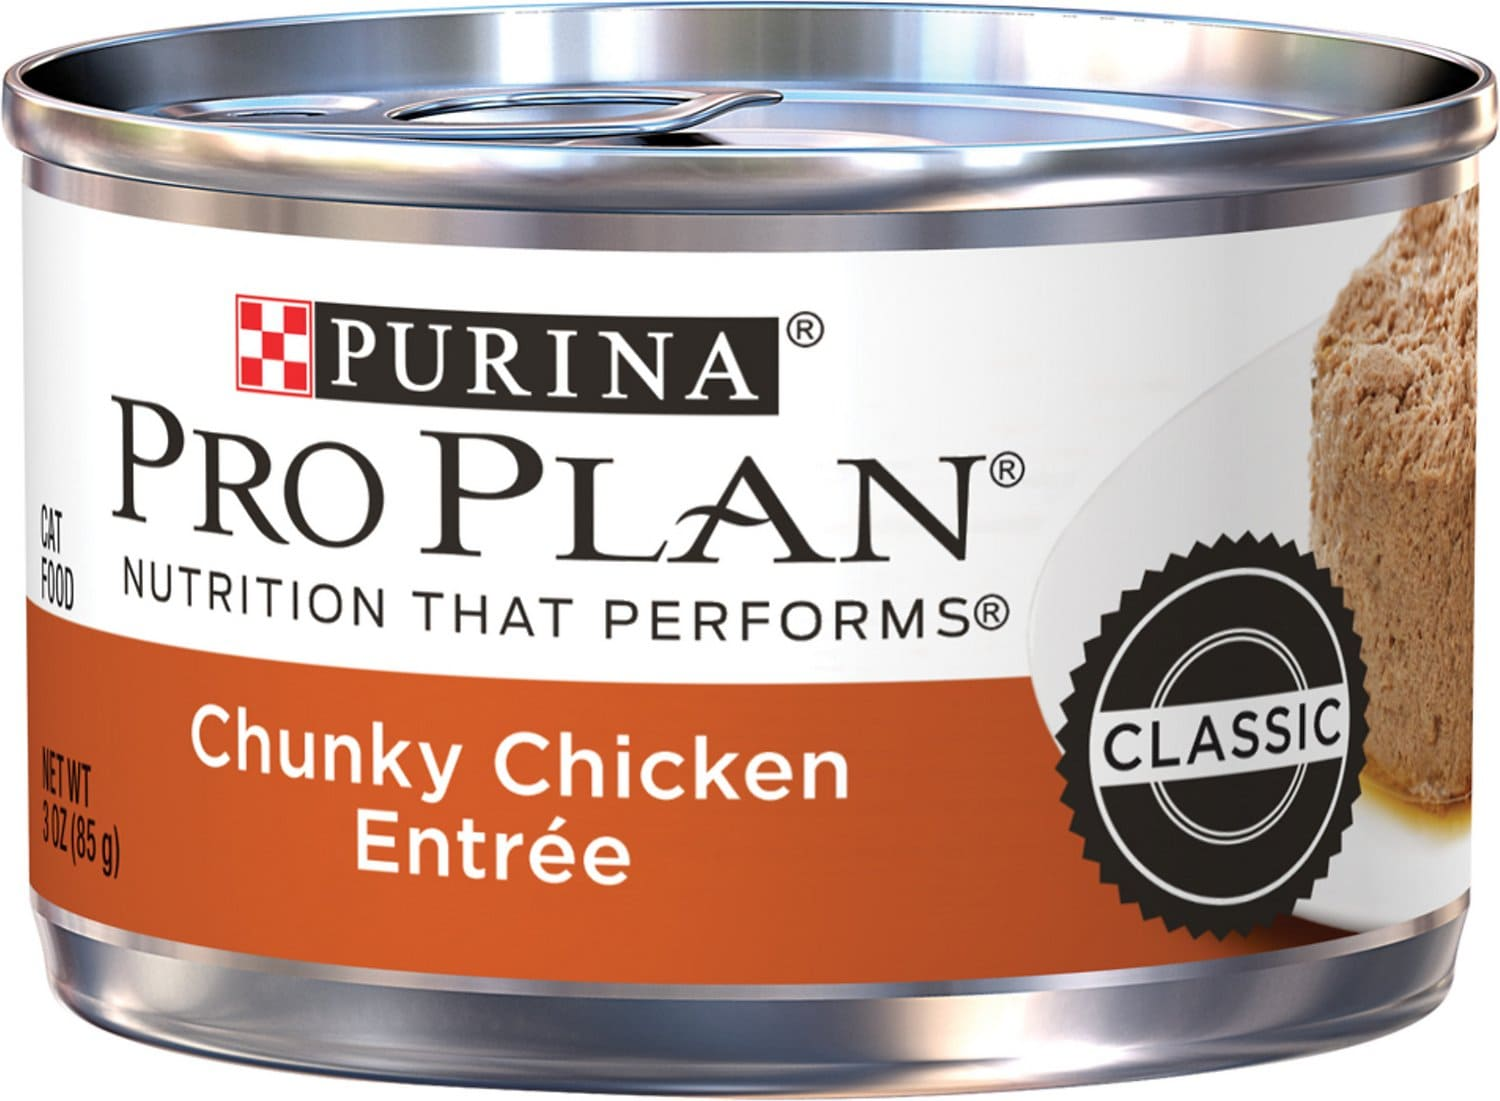 Purina Pro Plan Complete Essentials Entrée Classic  24 x 3 oz can Chunky Chicken 1